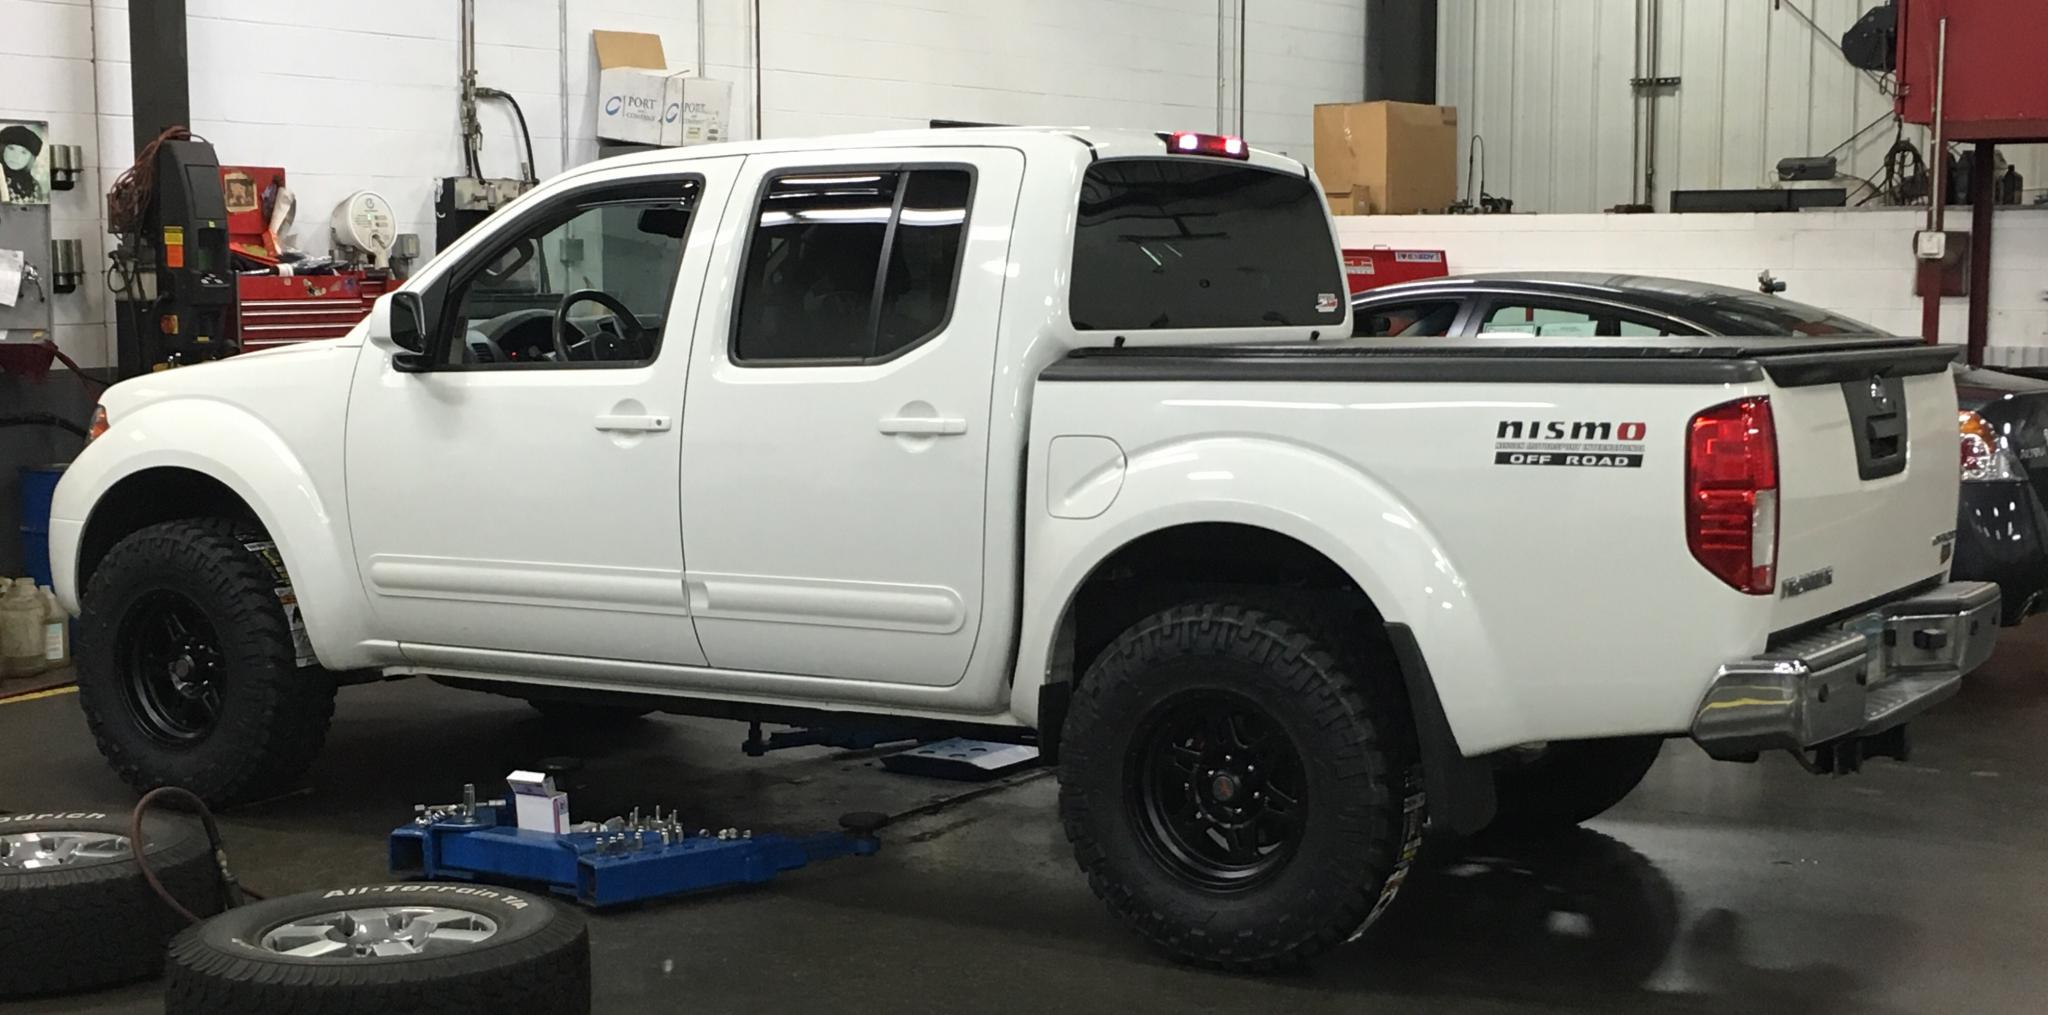 285 75r16 All Terrain Tires >> 265/75r16 vs 285/75r16 duratracs in winter weather? - Page 2 - Nissan Frontier Forum